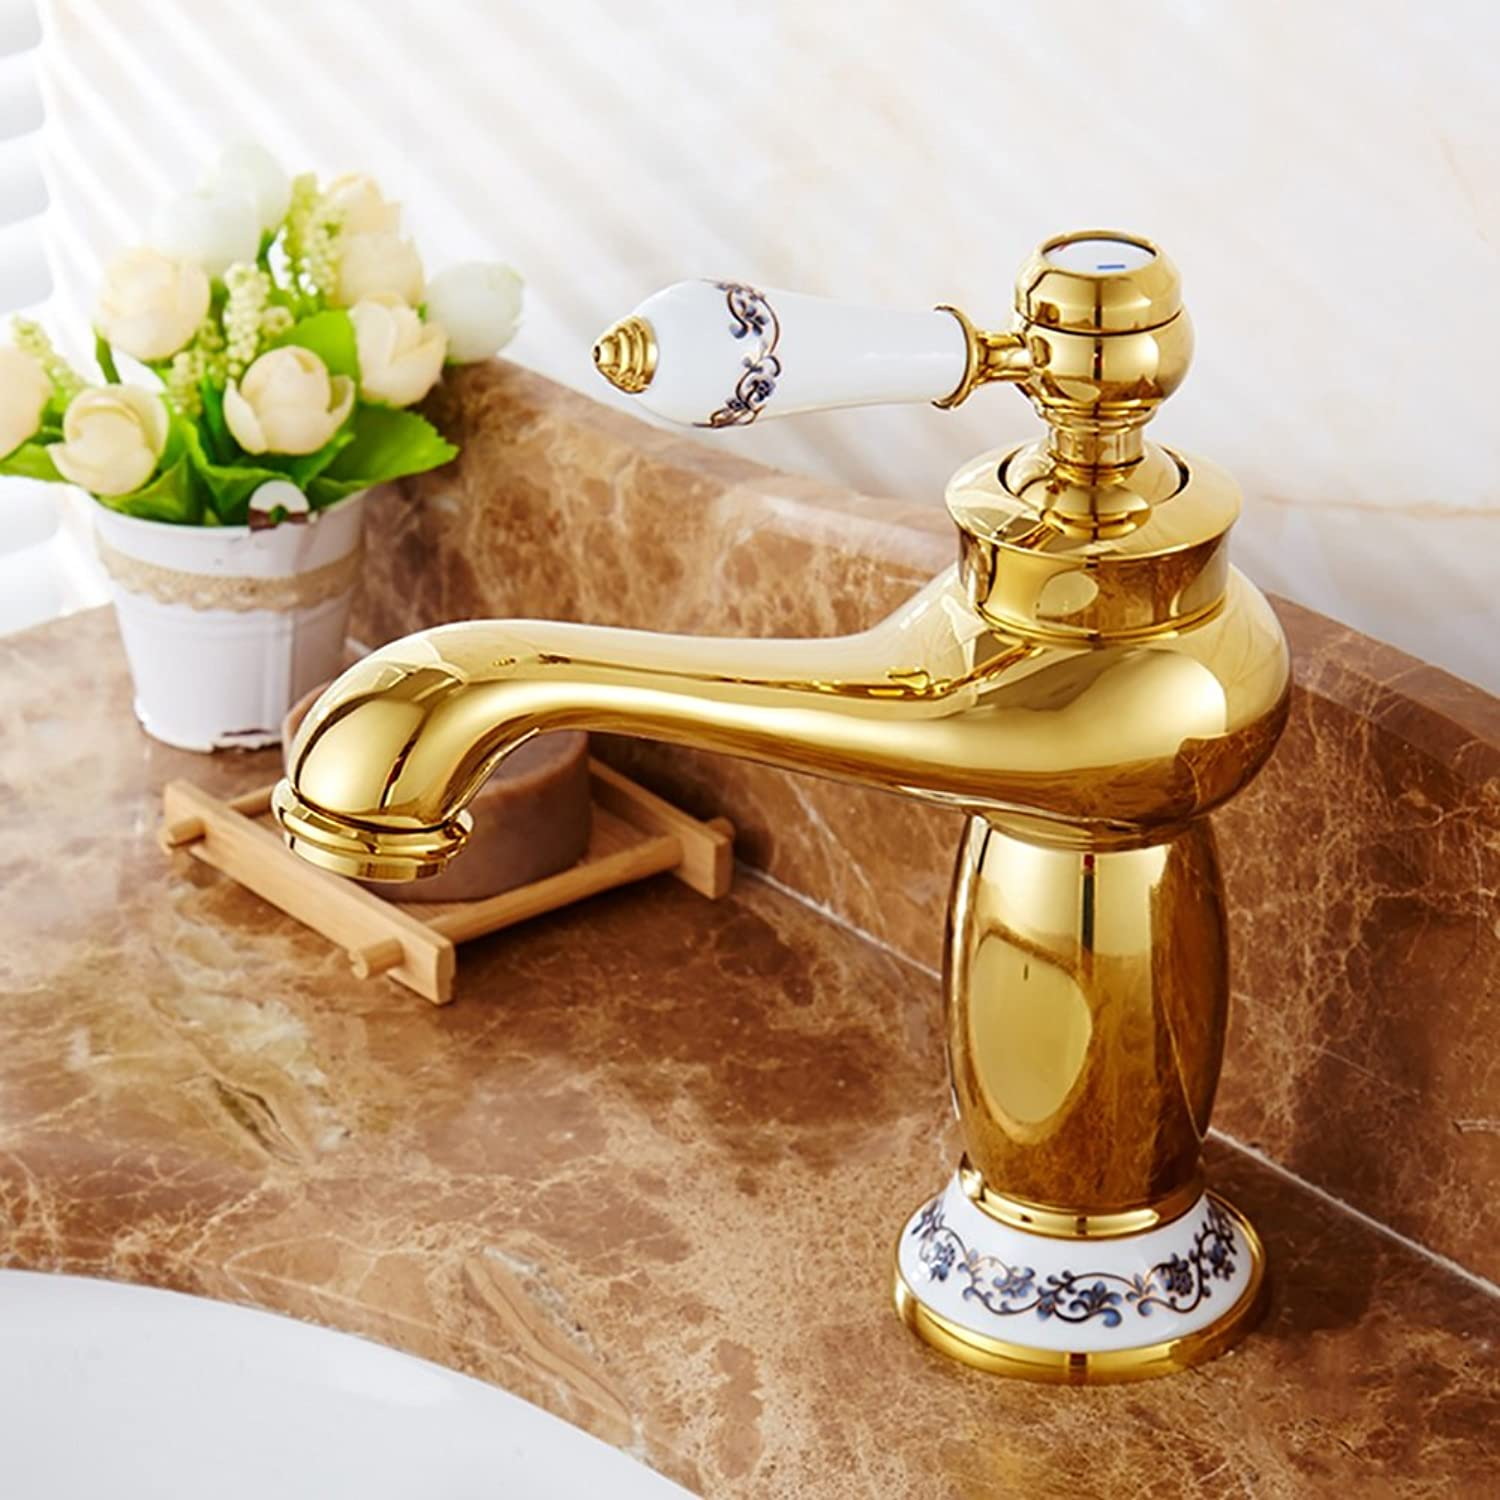 ZJM All Copper Basin Faucet Single Hole Retro Hot And Cold Water Mixer bluee And White Porcelain (color   gold)